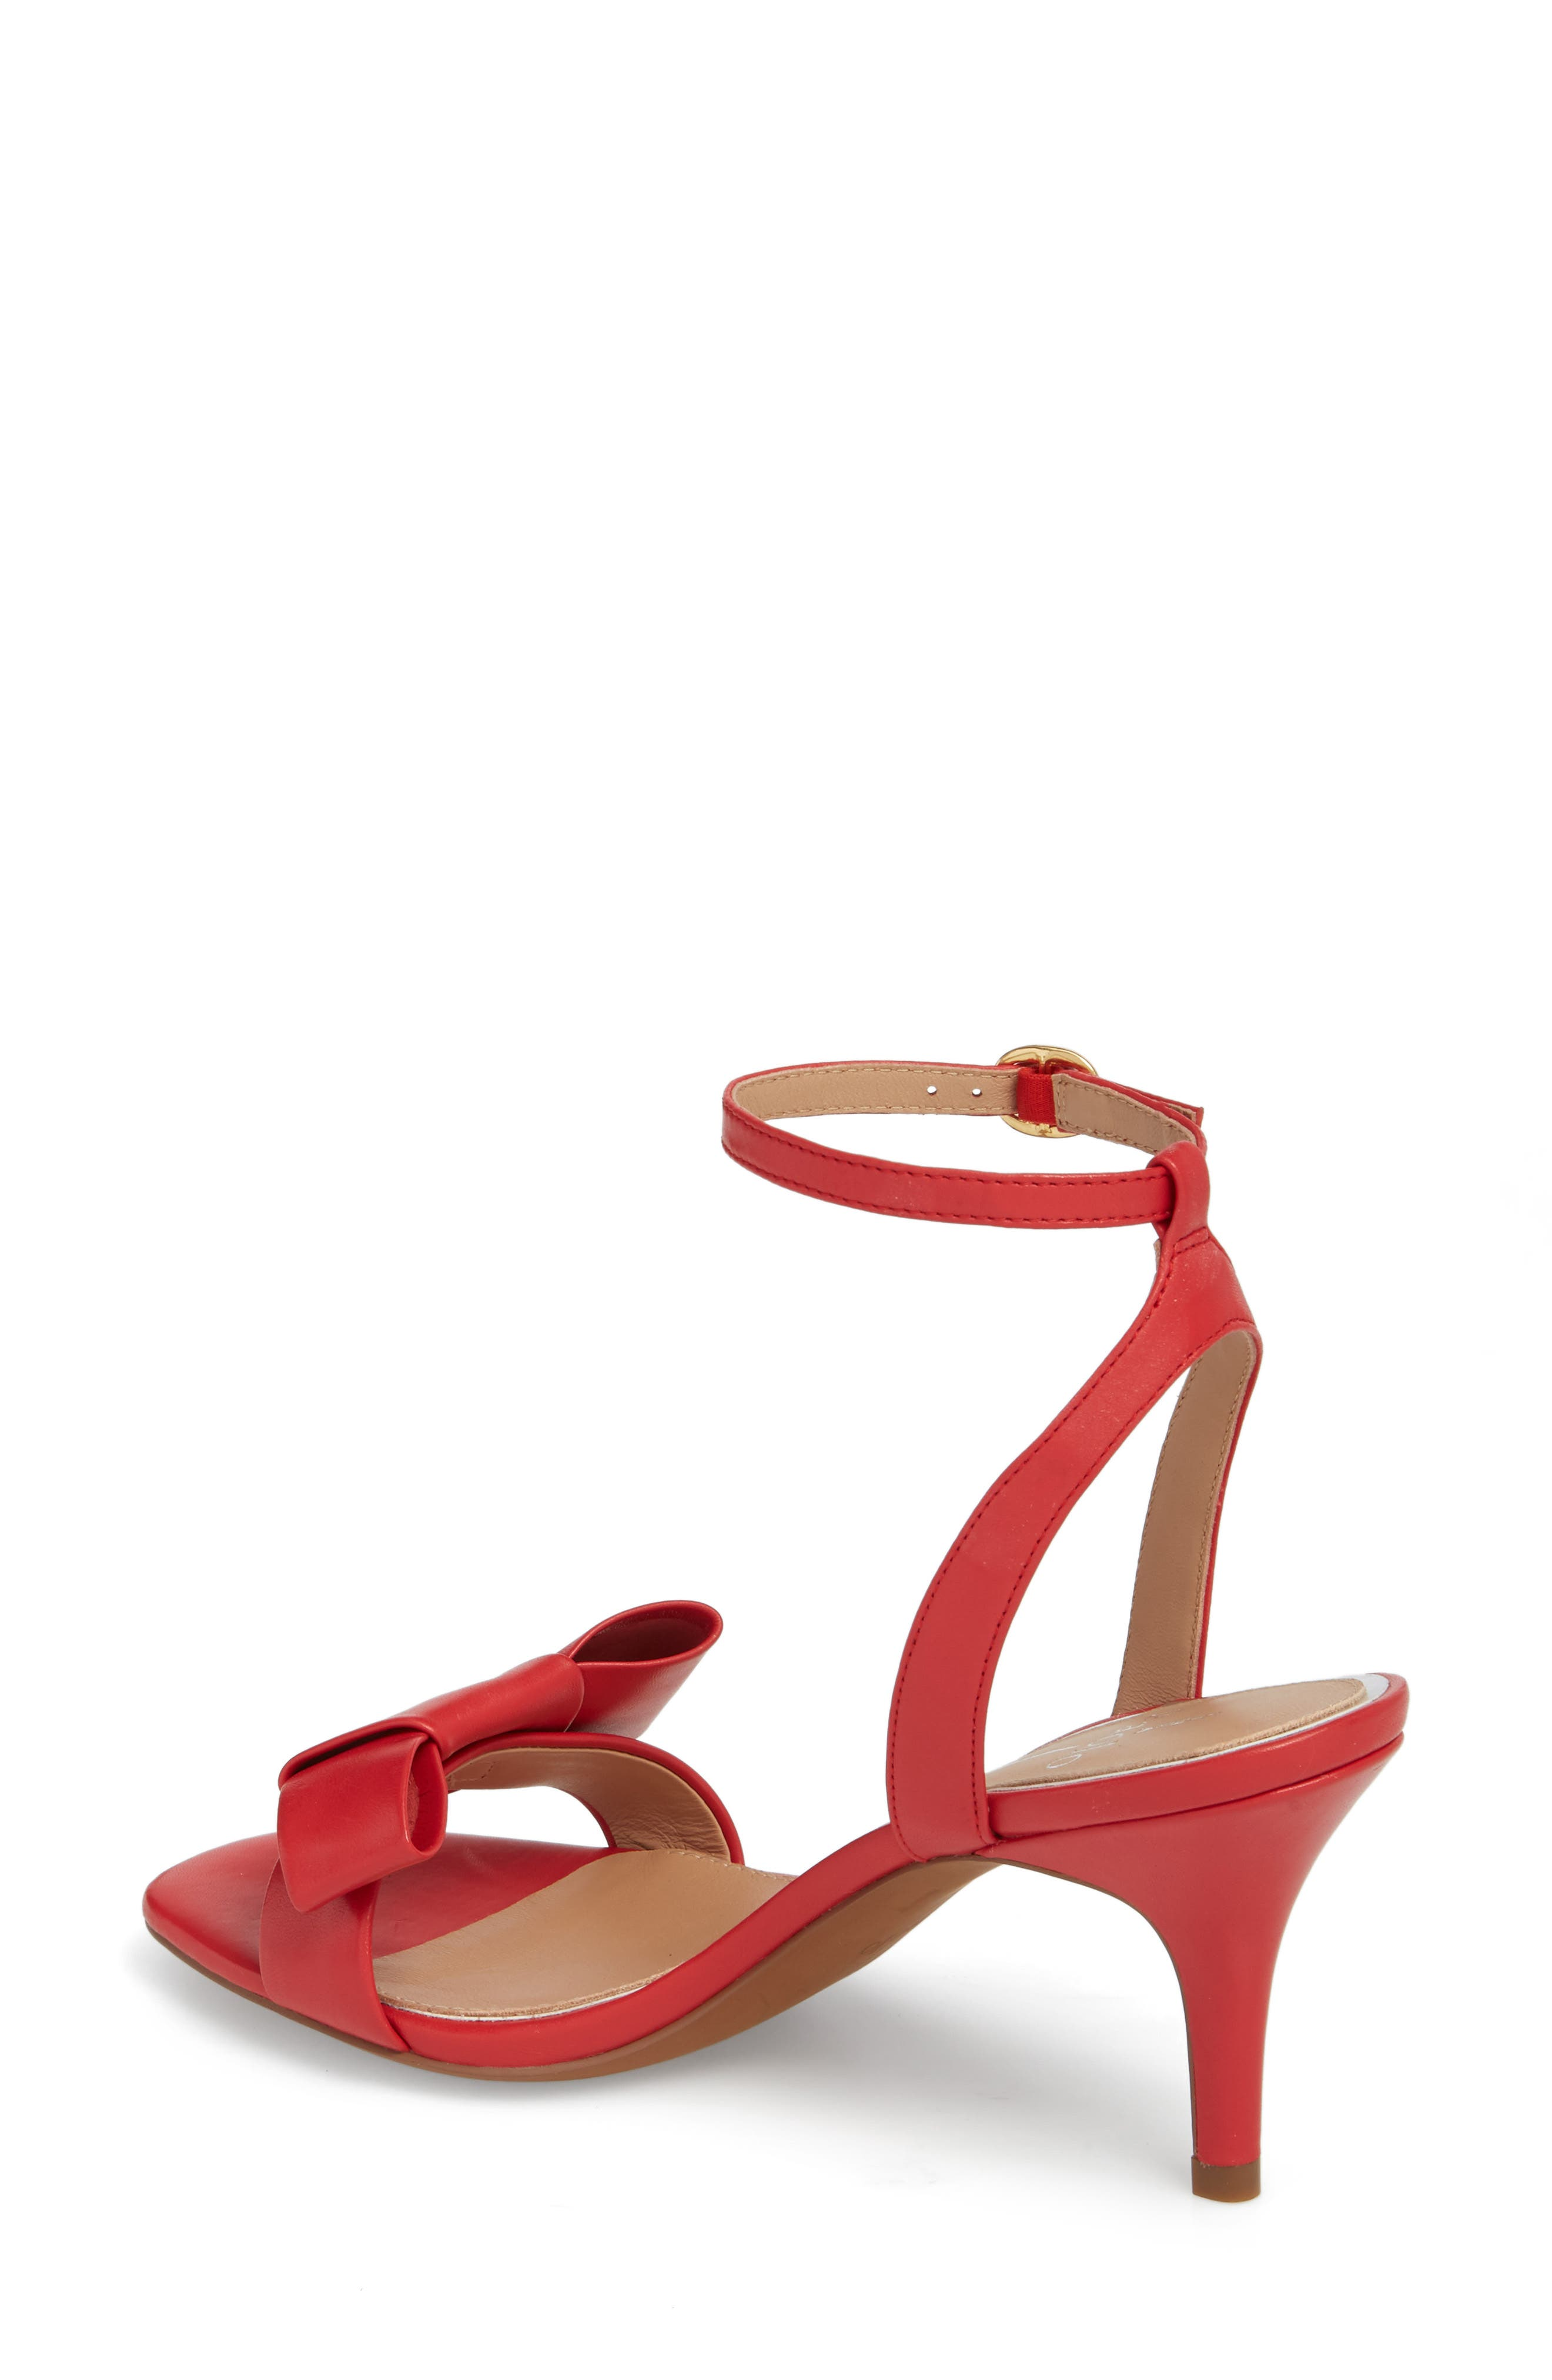 Haven Ankle Strap Sandal,                             Alternate thumbnail 2, color,                             Red Leather